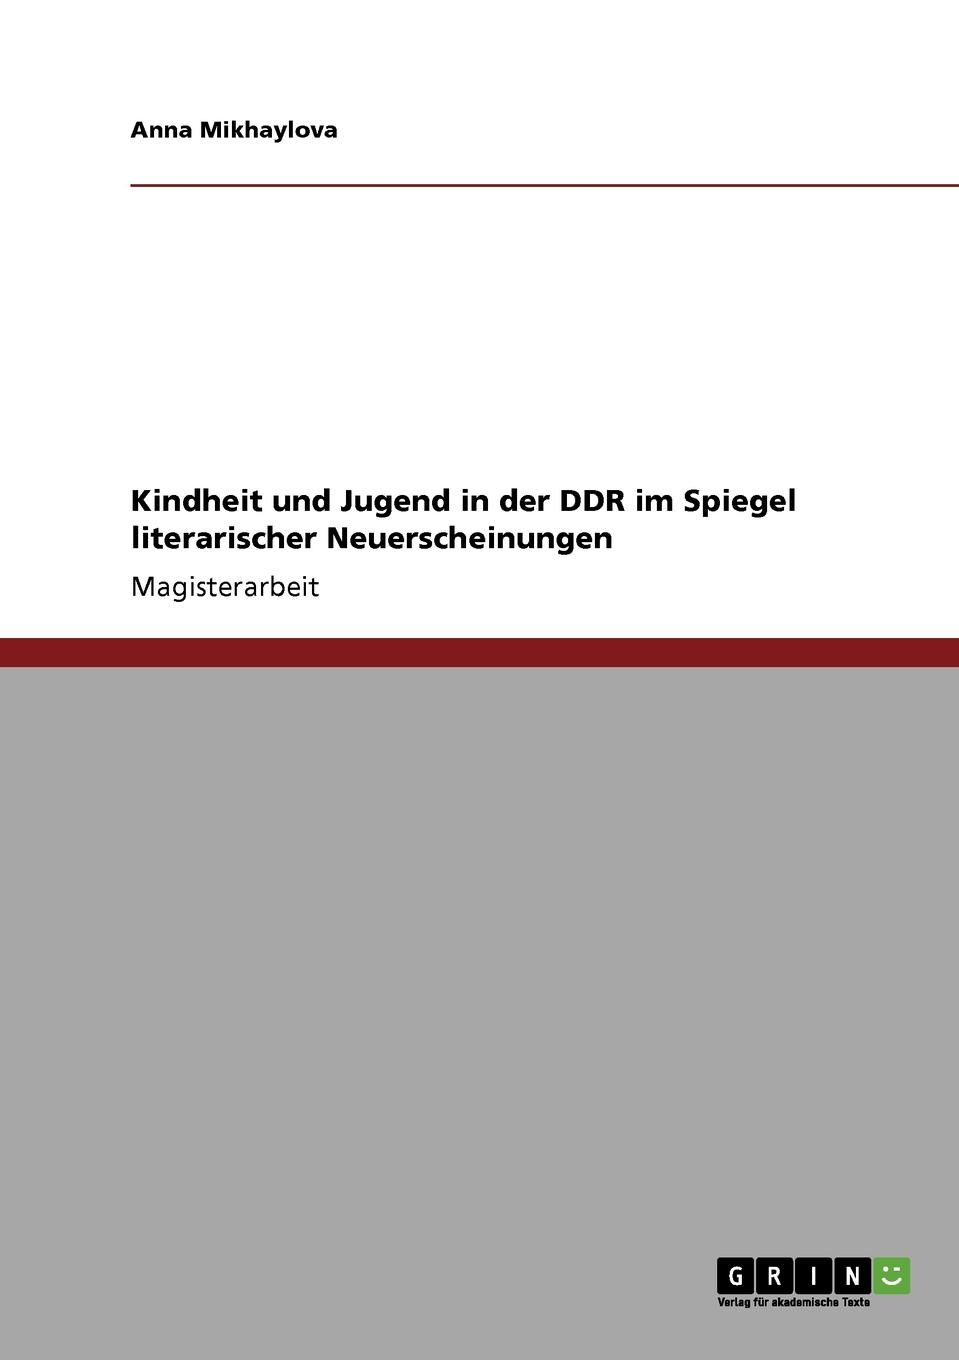 Anna Mikhaylova Kindheit und Jugend in der DDR im Spiegel literarischer Neuerscheinungen charles h hayes essex county regiment a directory of the commissioned and non commissioned officers and privates of each company attached to the fourteenth commanding stationed at the forts near